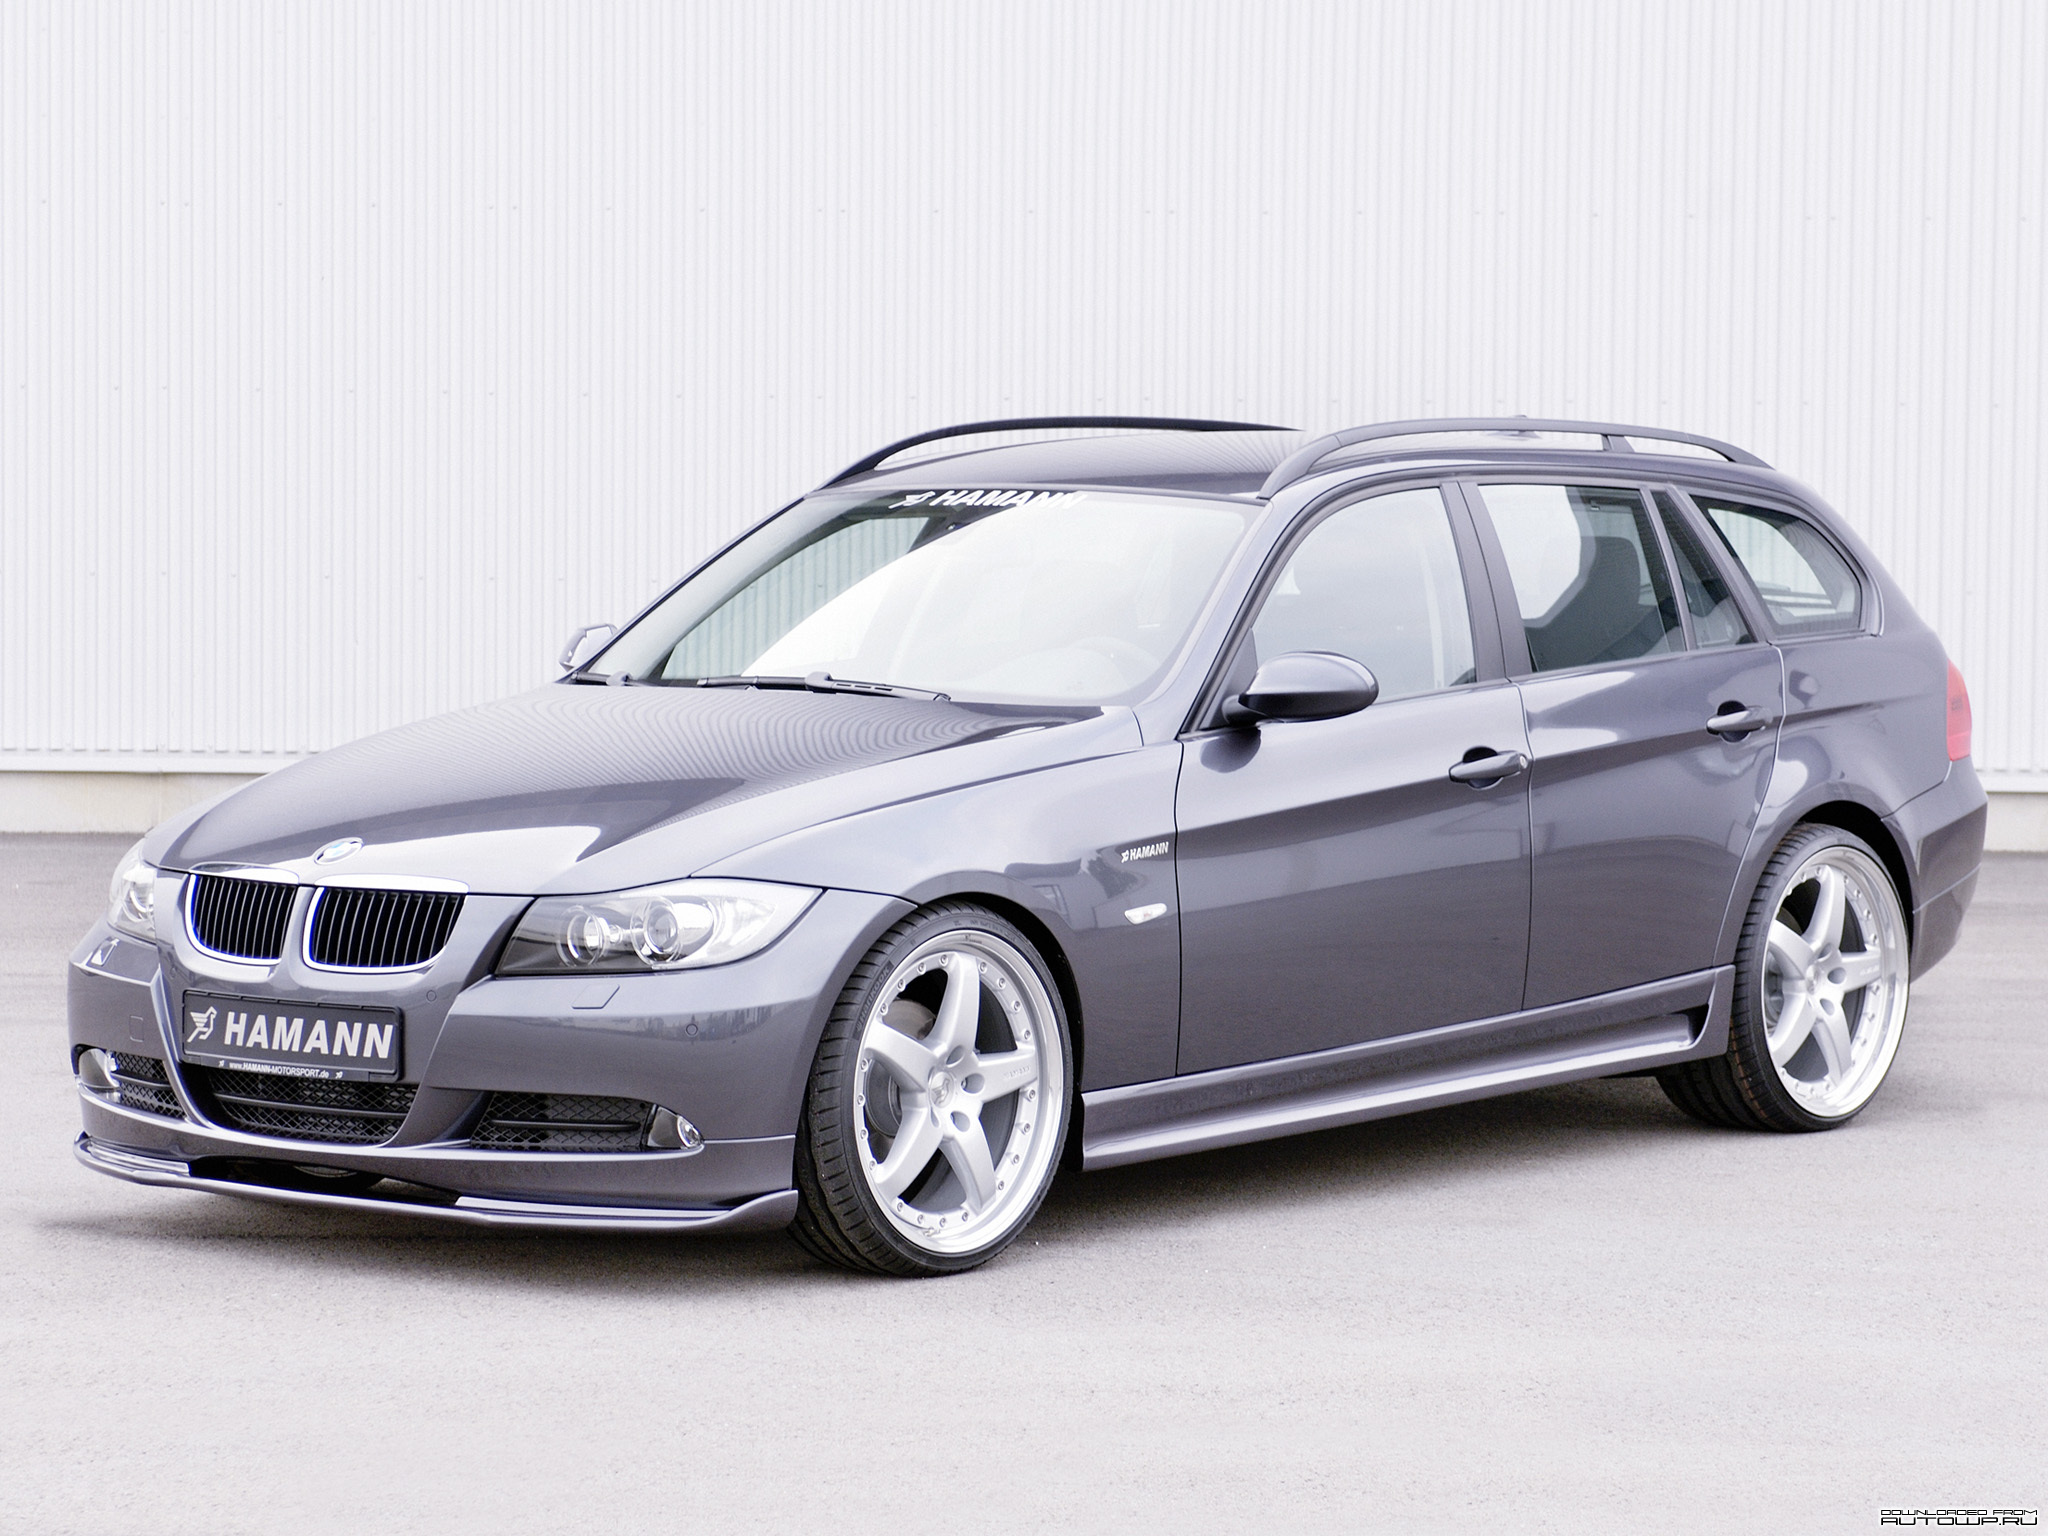 hamann bmw 3 series touring e91 photos photogallery with 4 pics. Black Bedroom Furniture Sets. Home Design Ideas